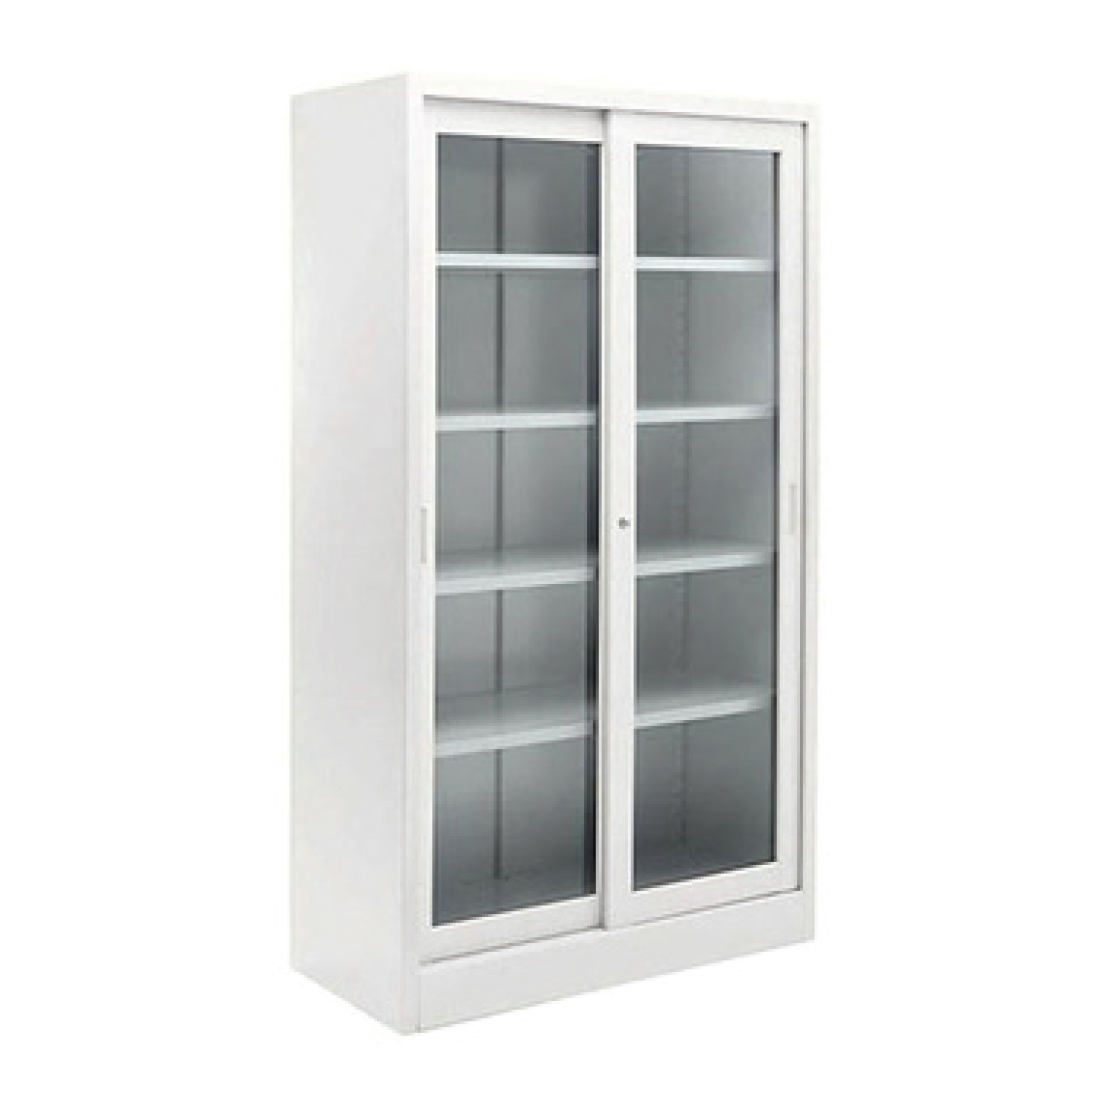 Storage Cabinet With Glass Doors 69 Inch Wood And Glass 2